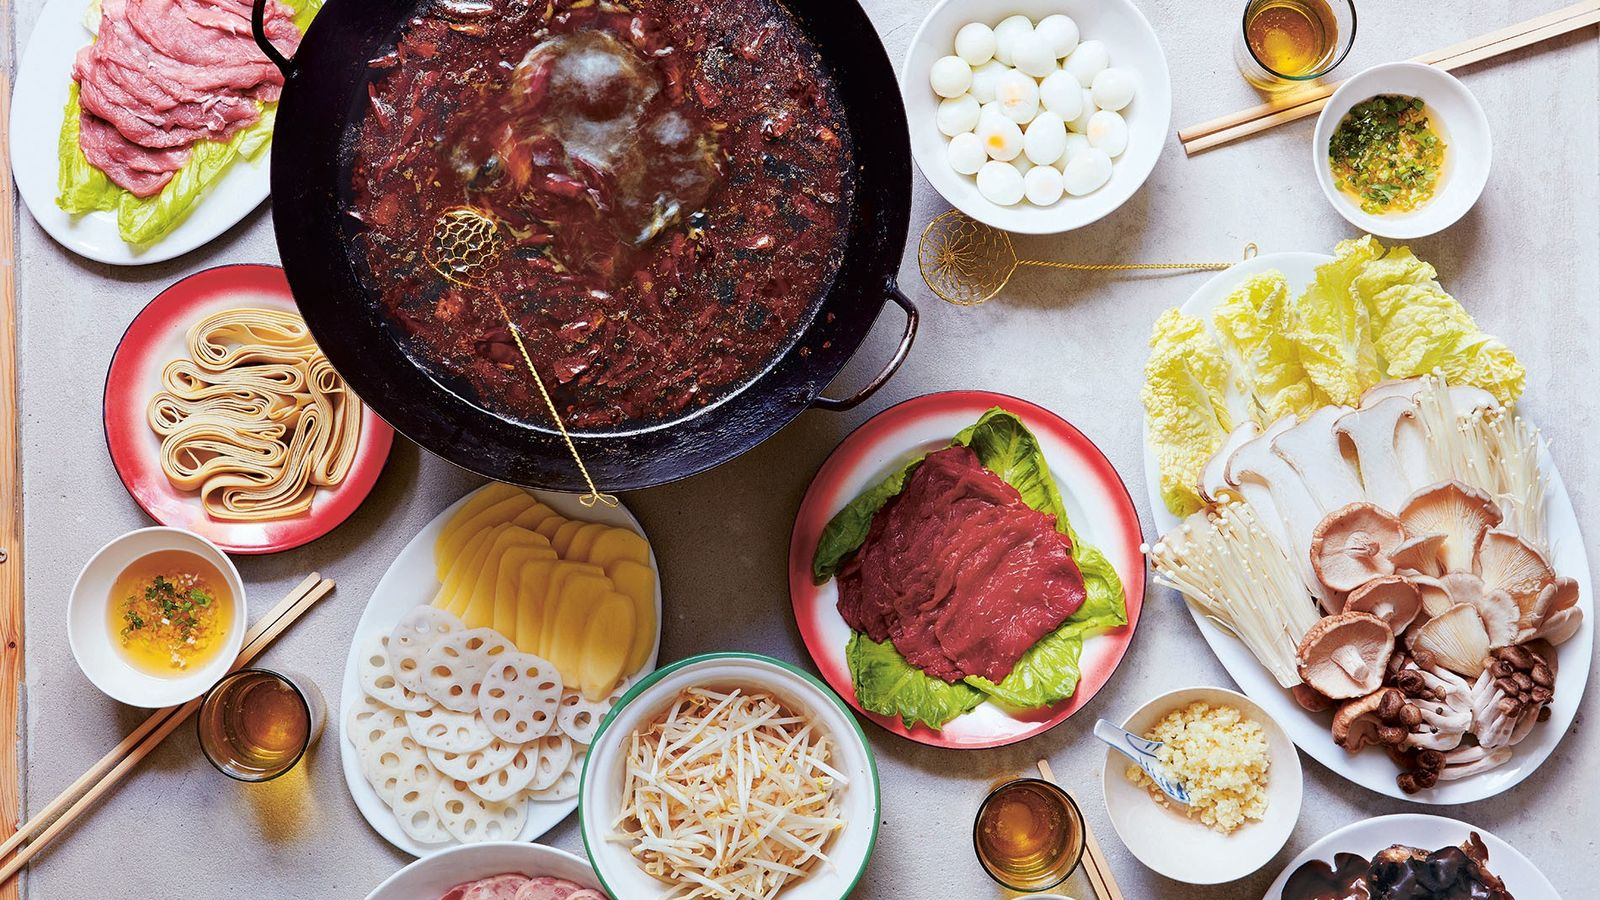 The most famous characteristic of Sichuanese cuisine is its fieriness, derived from the liberal use of ...